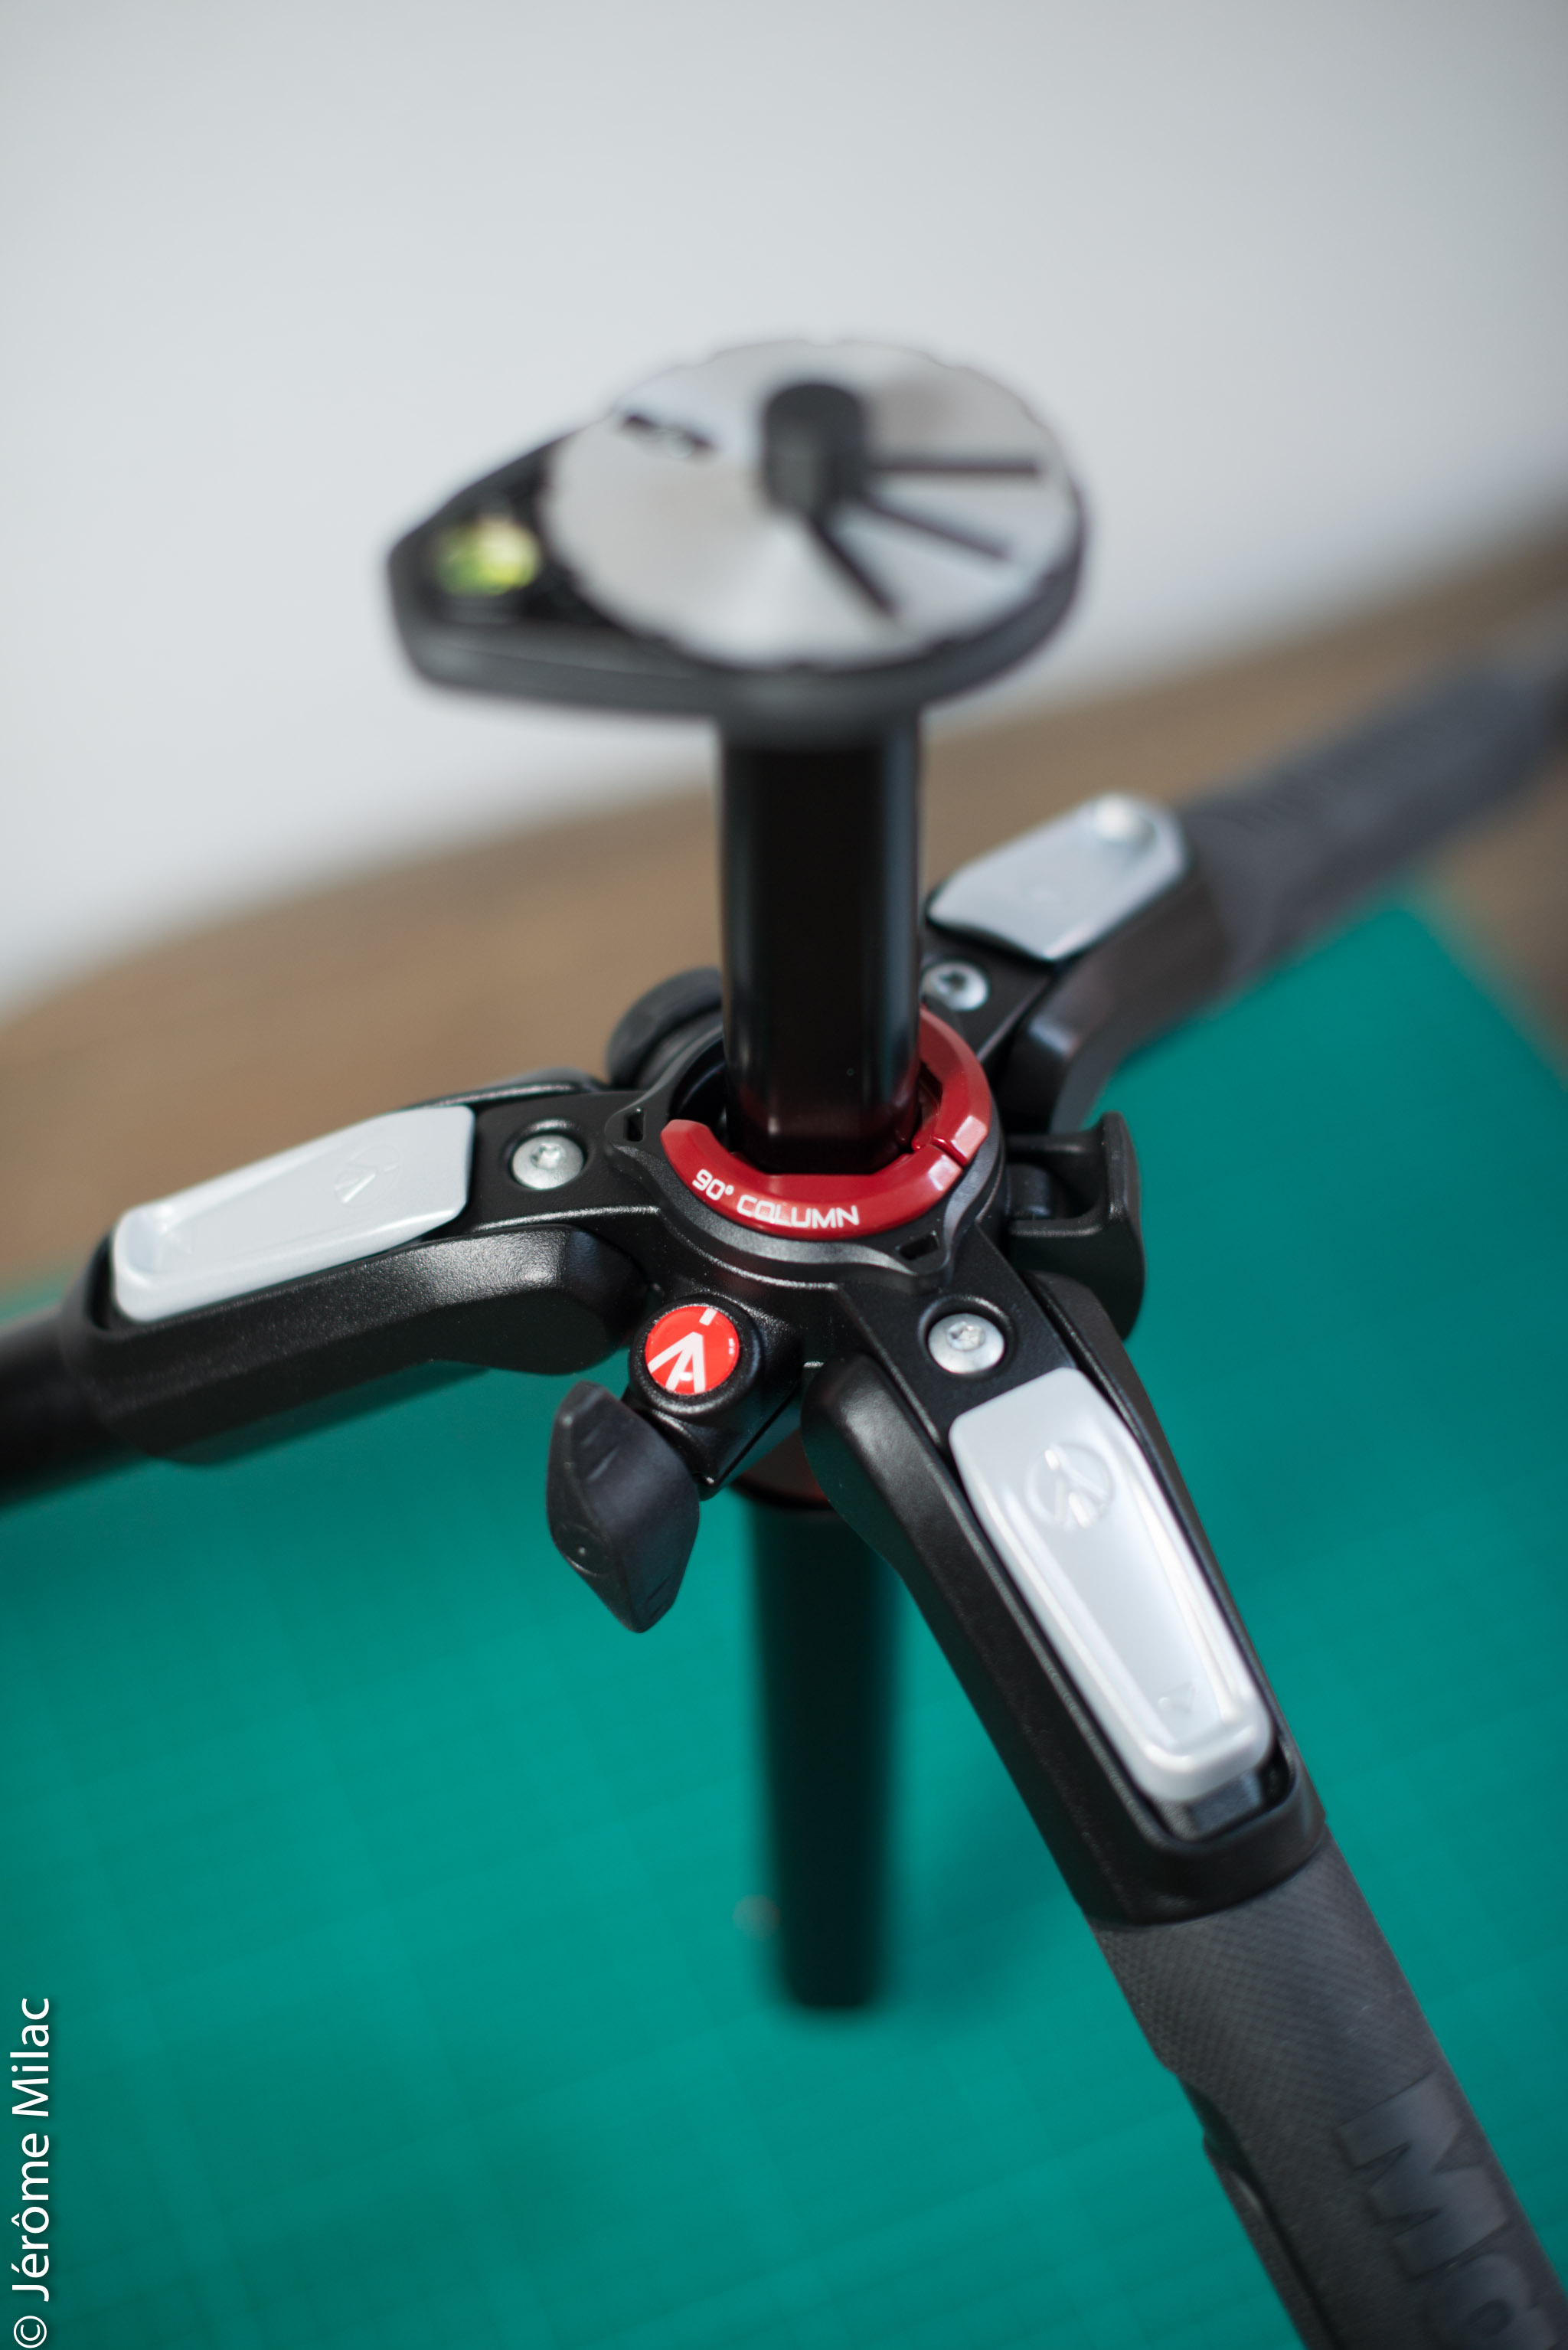 Manfrotto-5